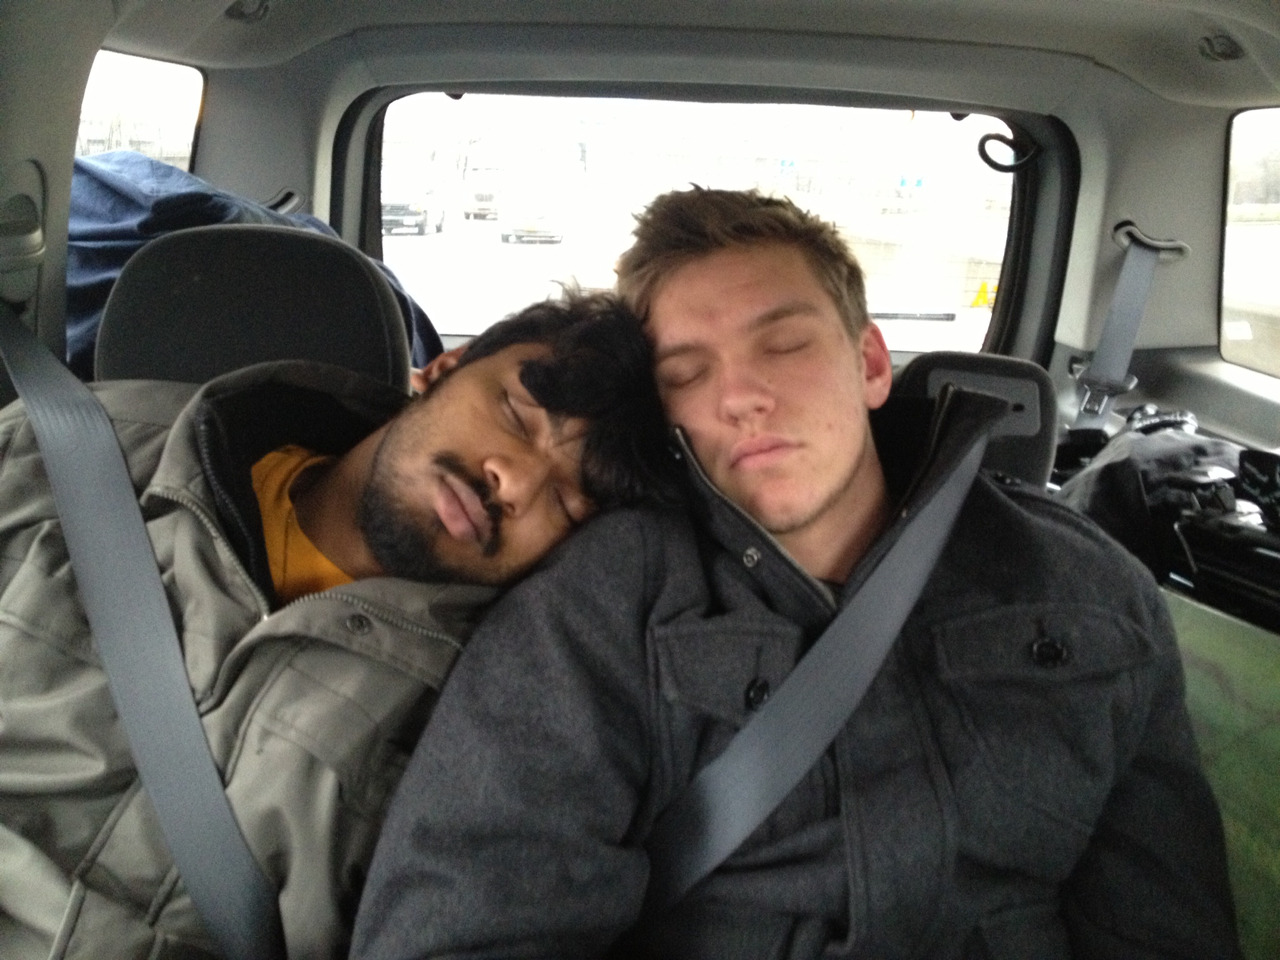 When we're not singing on tour, we're usually sleeping in cars #wintour2013 #JW